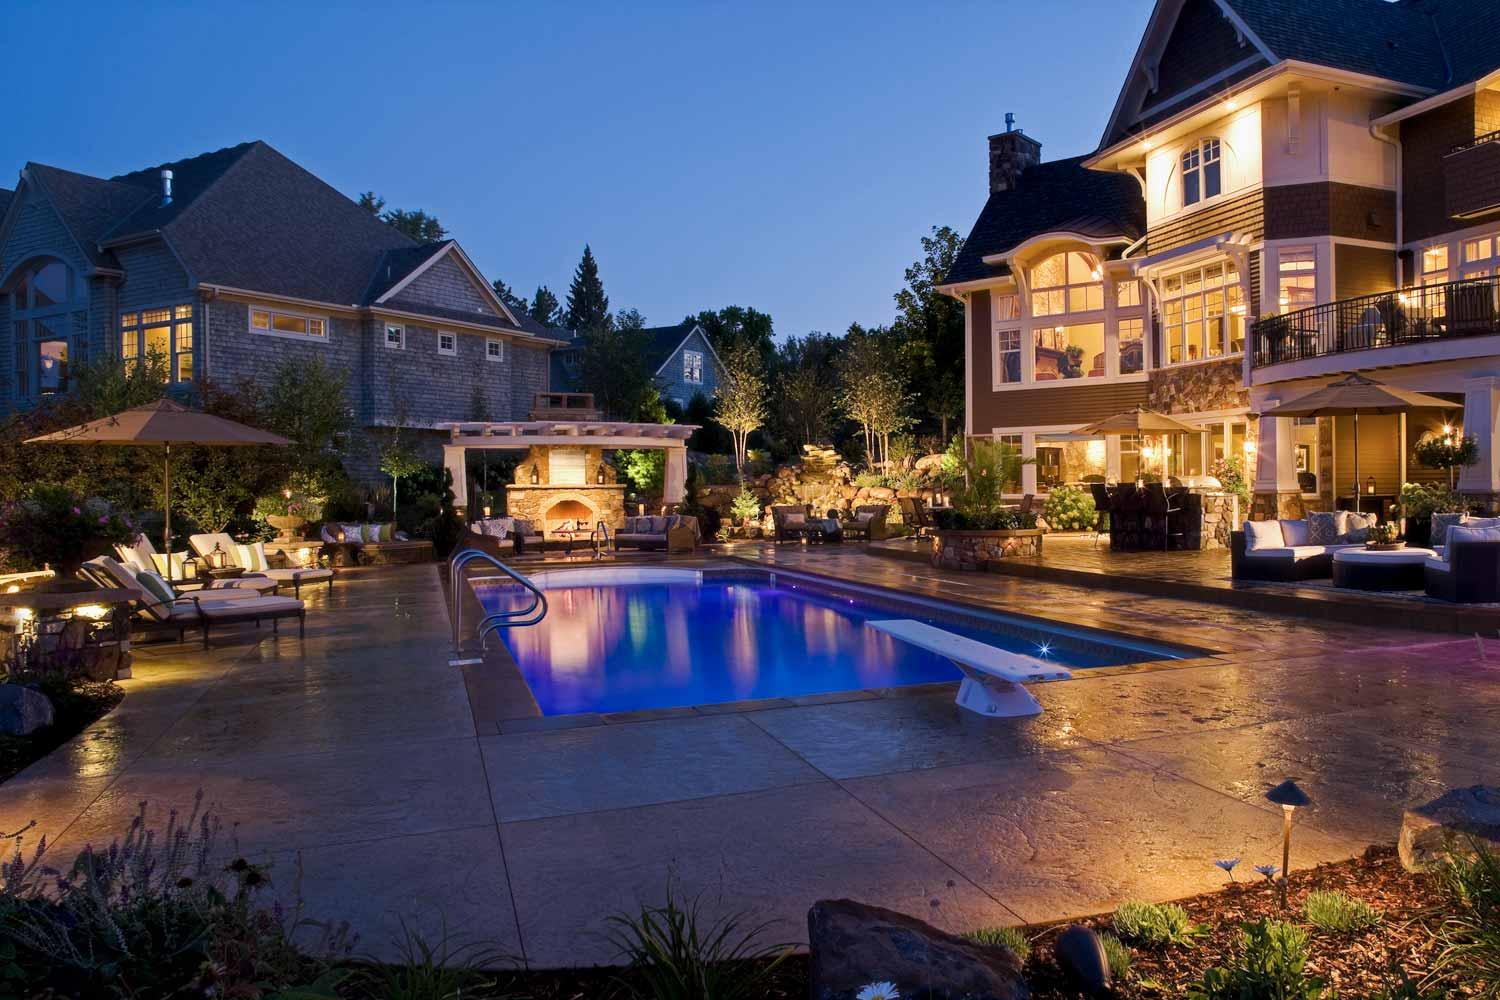 Luxury backyard lit up at night